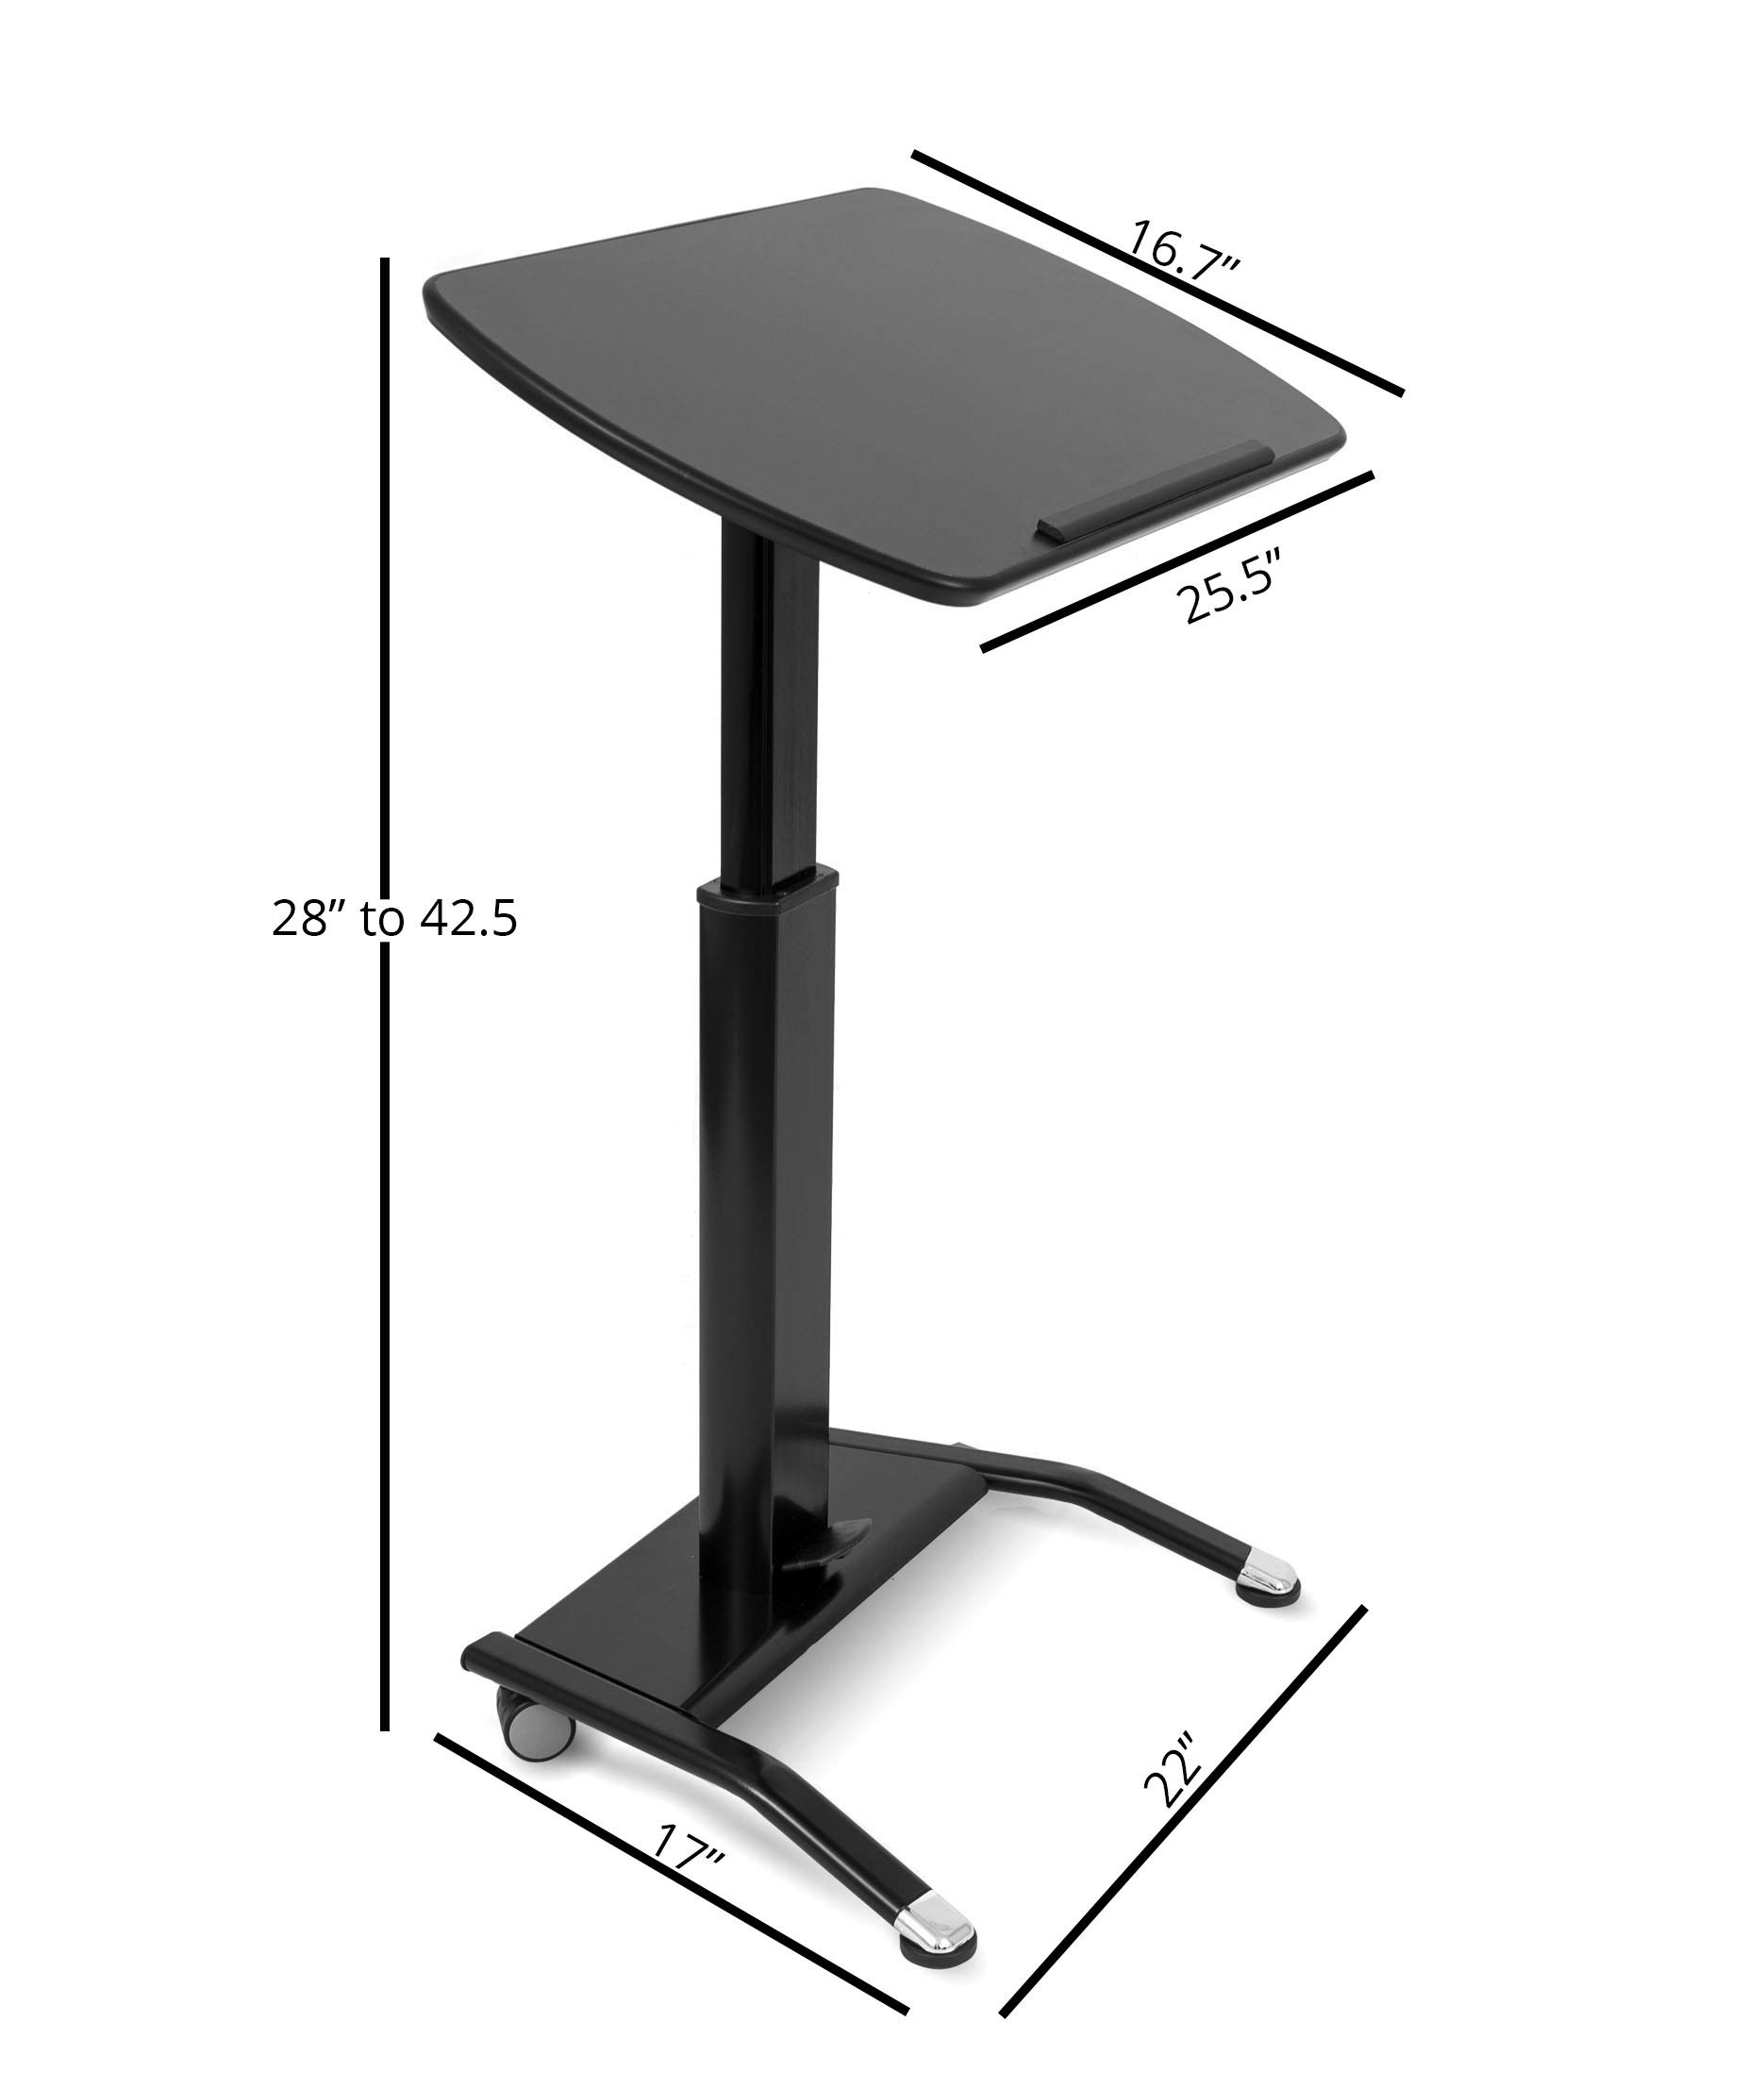 Pneumatic Adjustable-Height Lectern (Black) by Stand Up Desk Store (Image #7)